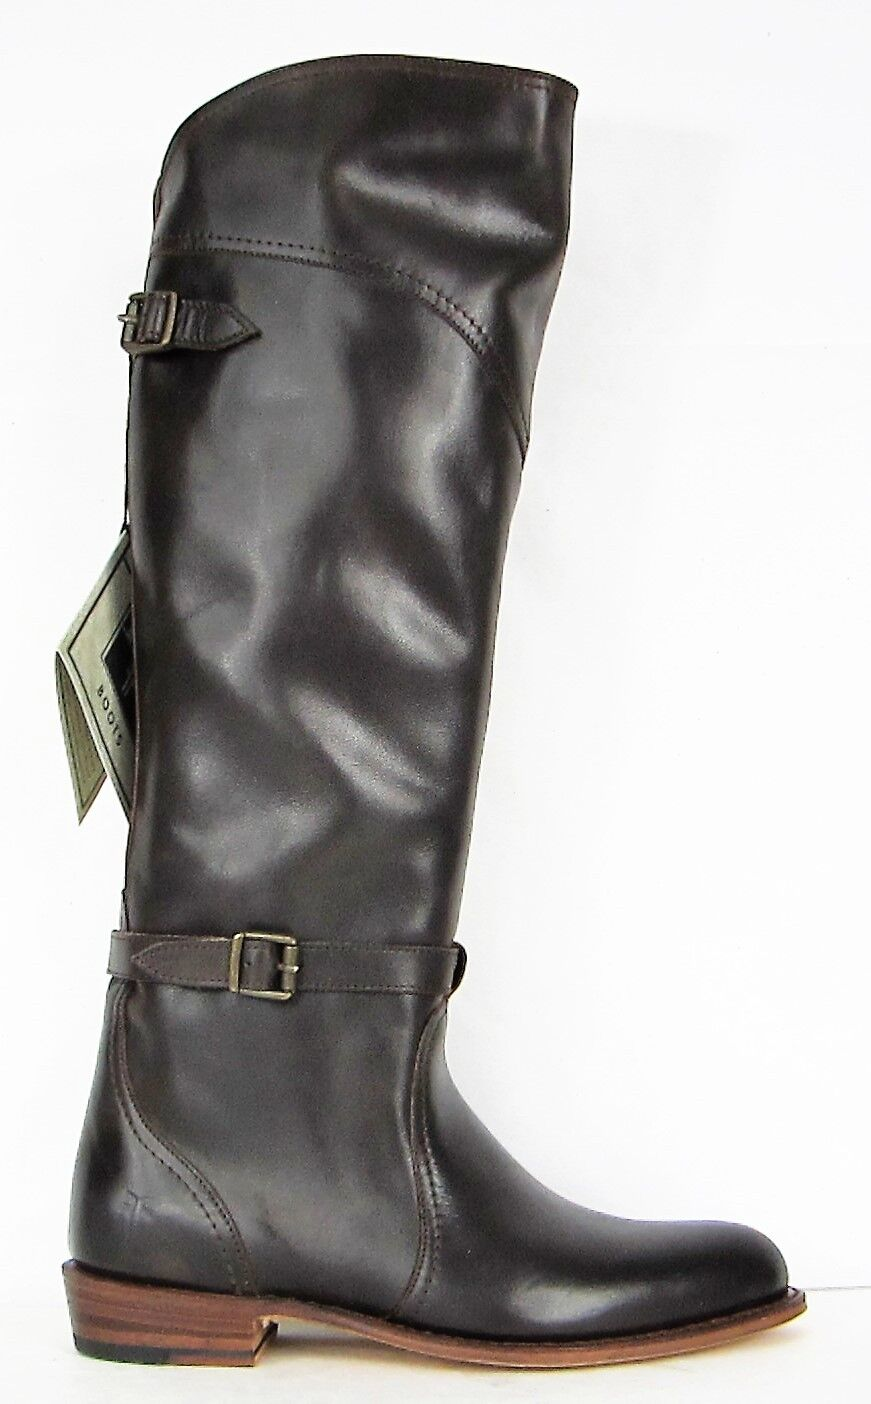 FRYE BOOTS Dorado Riding Dark Brown Leather Riding Boots 77561 SZ 6.5  6/  $458